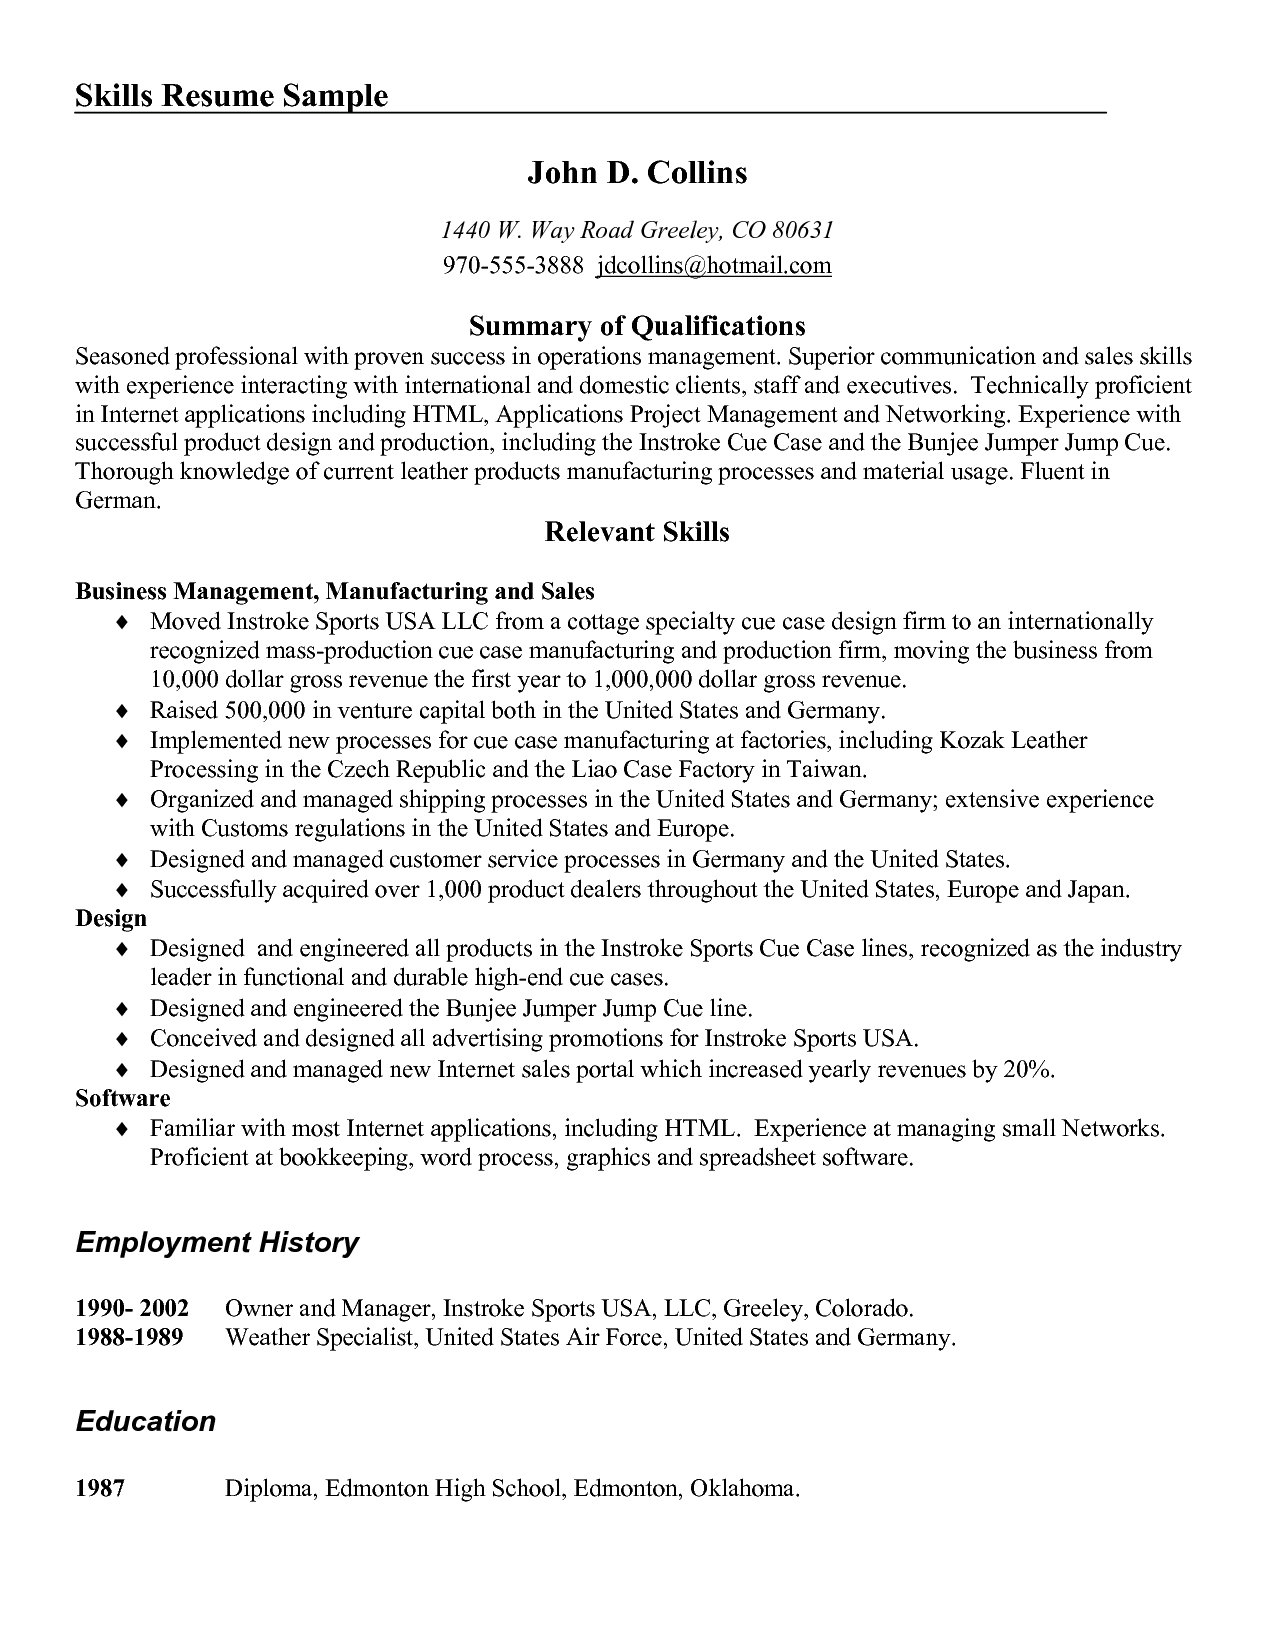 Resume Examples Skills Inspiration Image Result For Skill Based Resume Examples  Business 2018